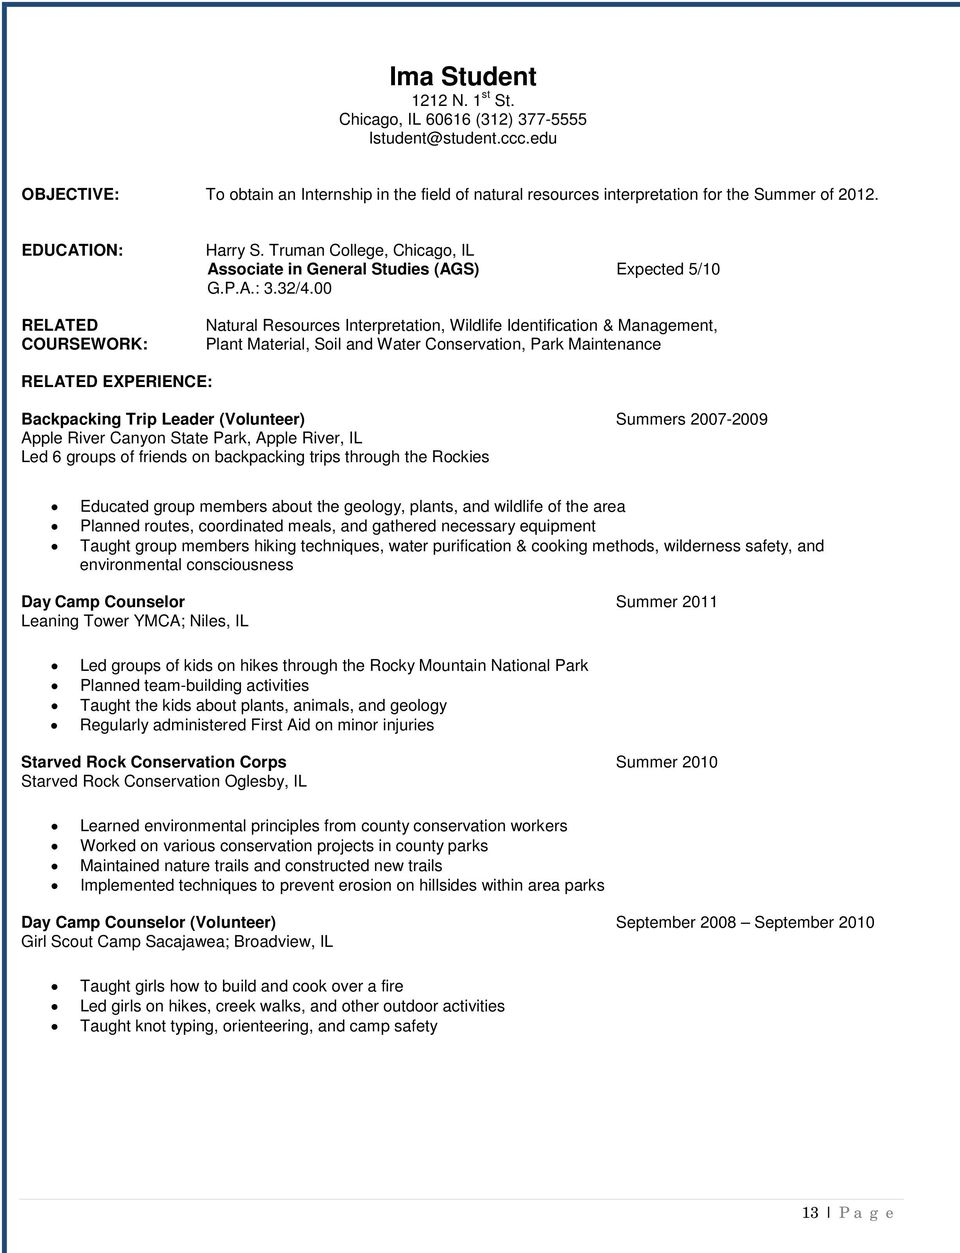 outdoor education resume objective outstanding resume format guide to resume writing job search and interview skills pdf